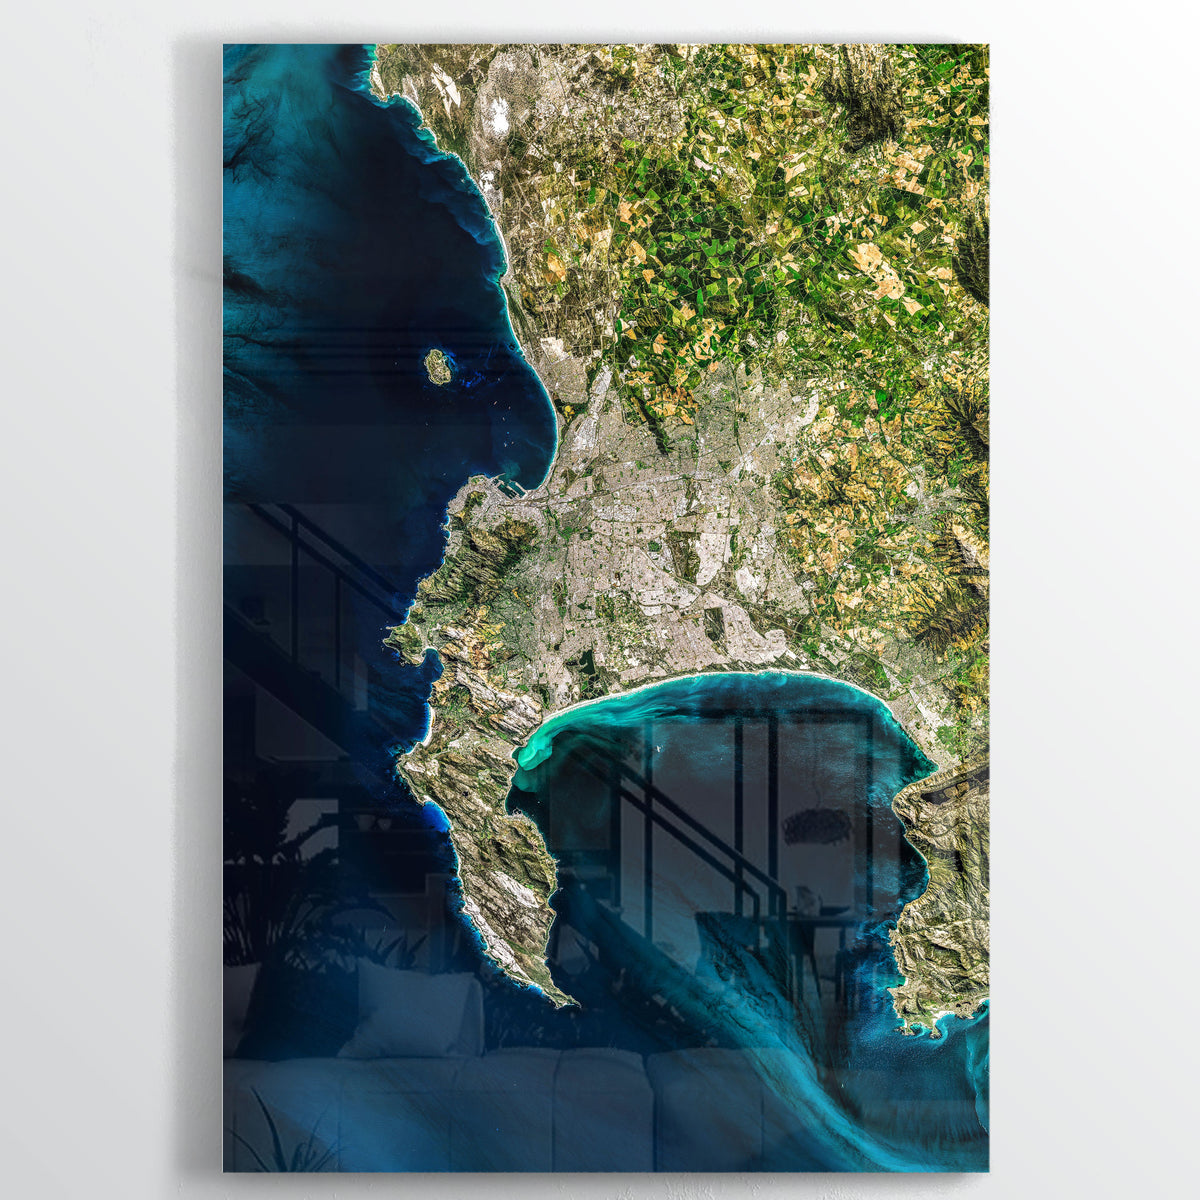 Cape Town Earth Photography - Floating Acrylic Art - Point Two Design